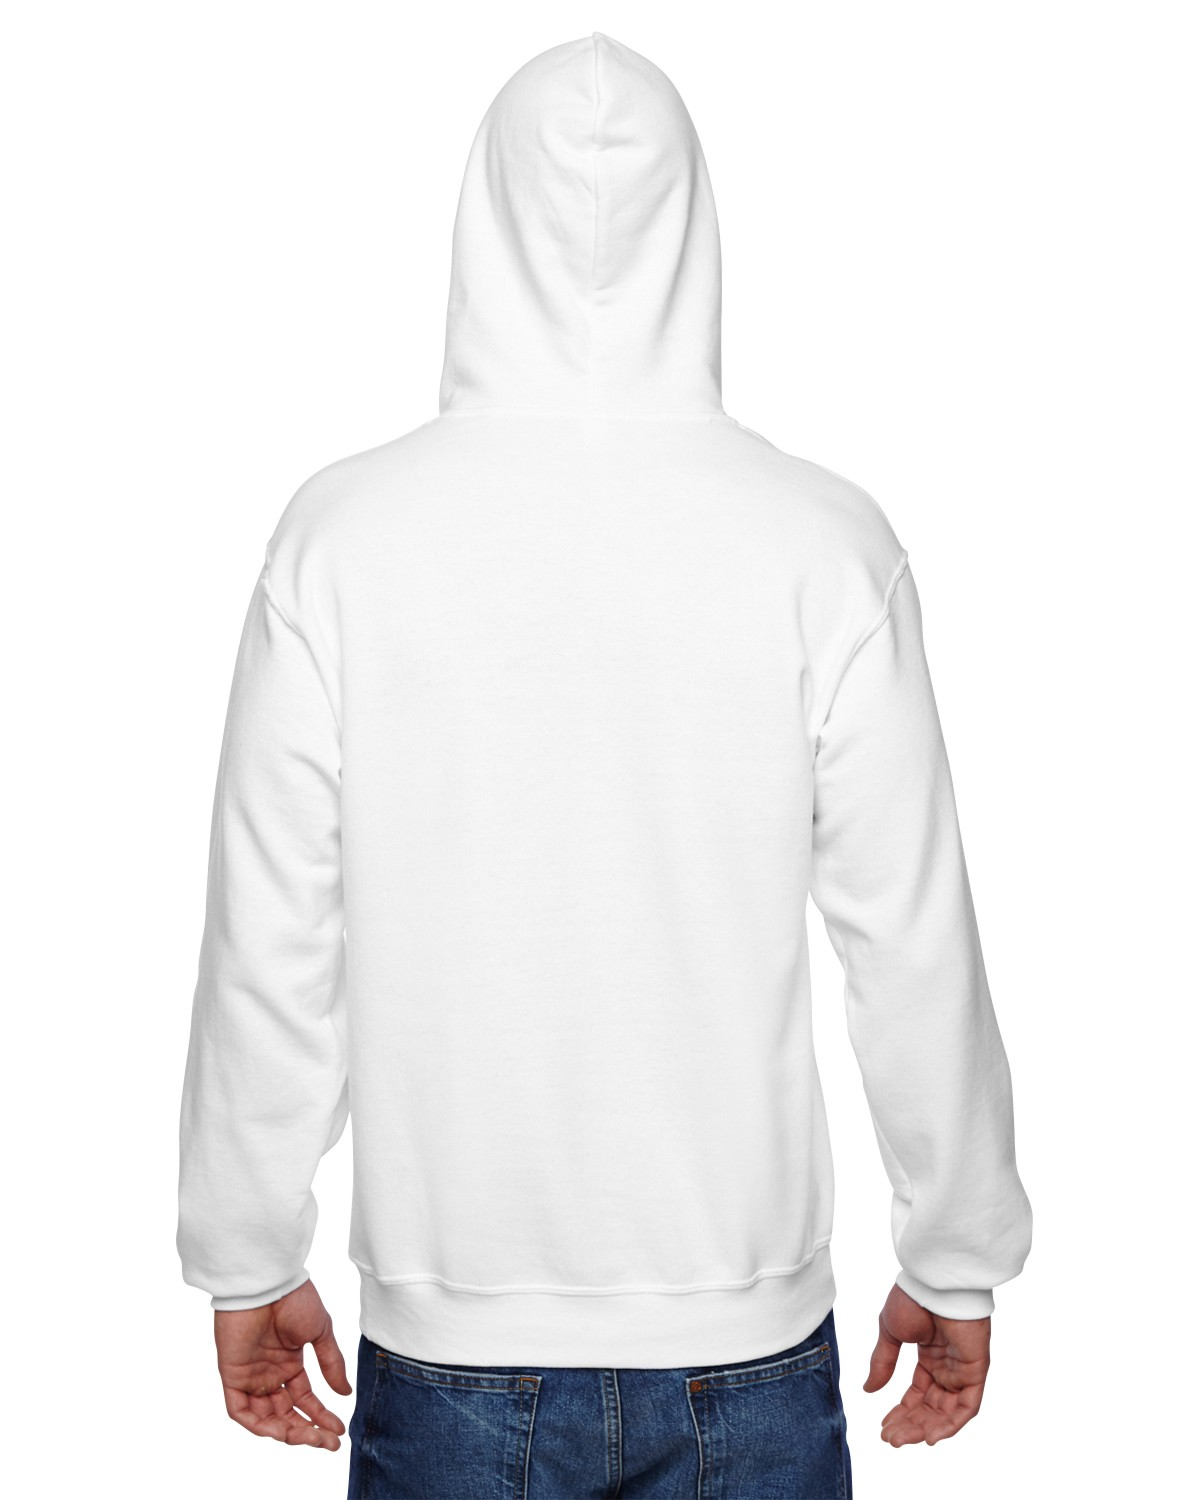 SF76R Fruit of the Loom WHITE